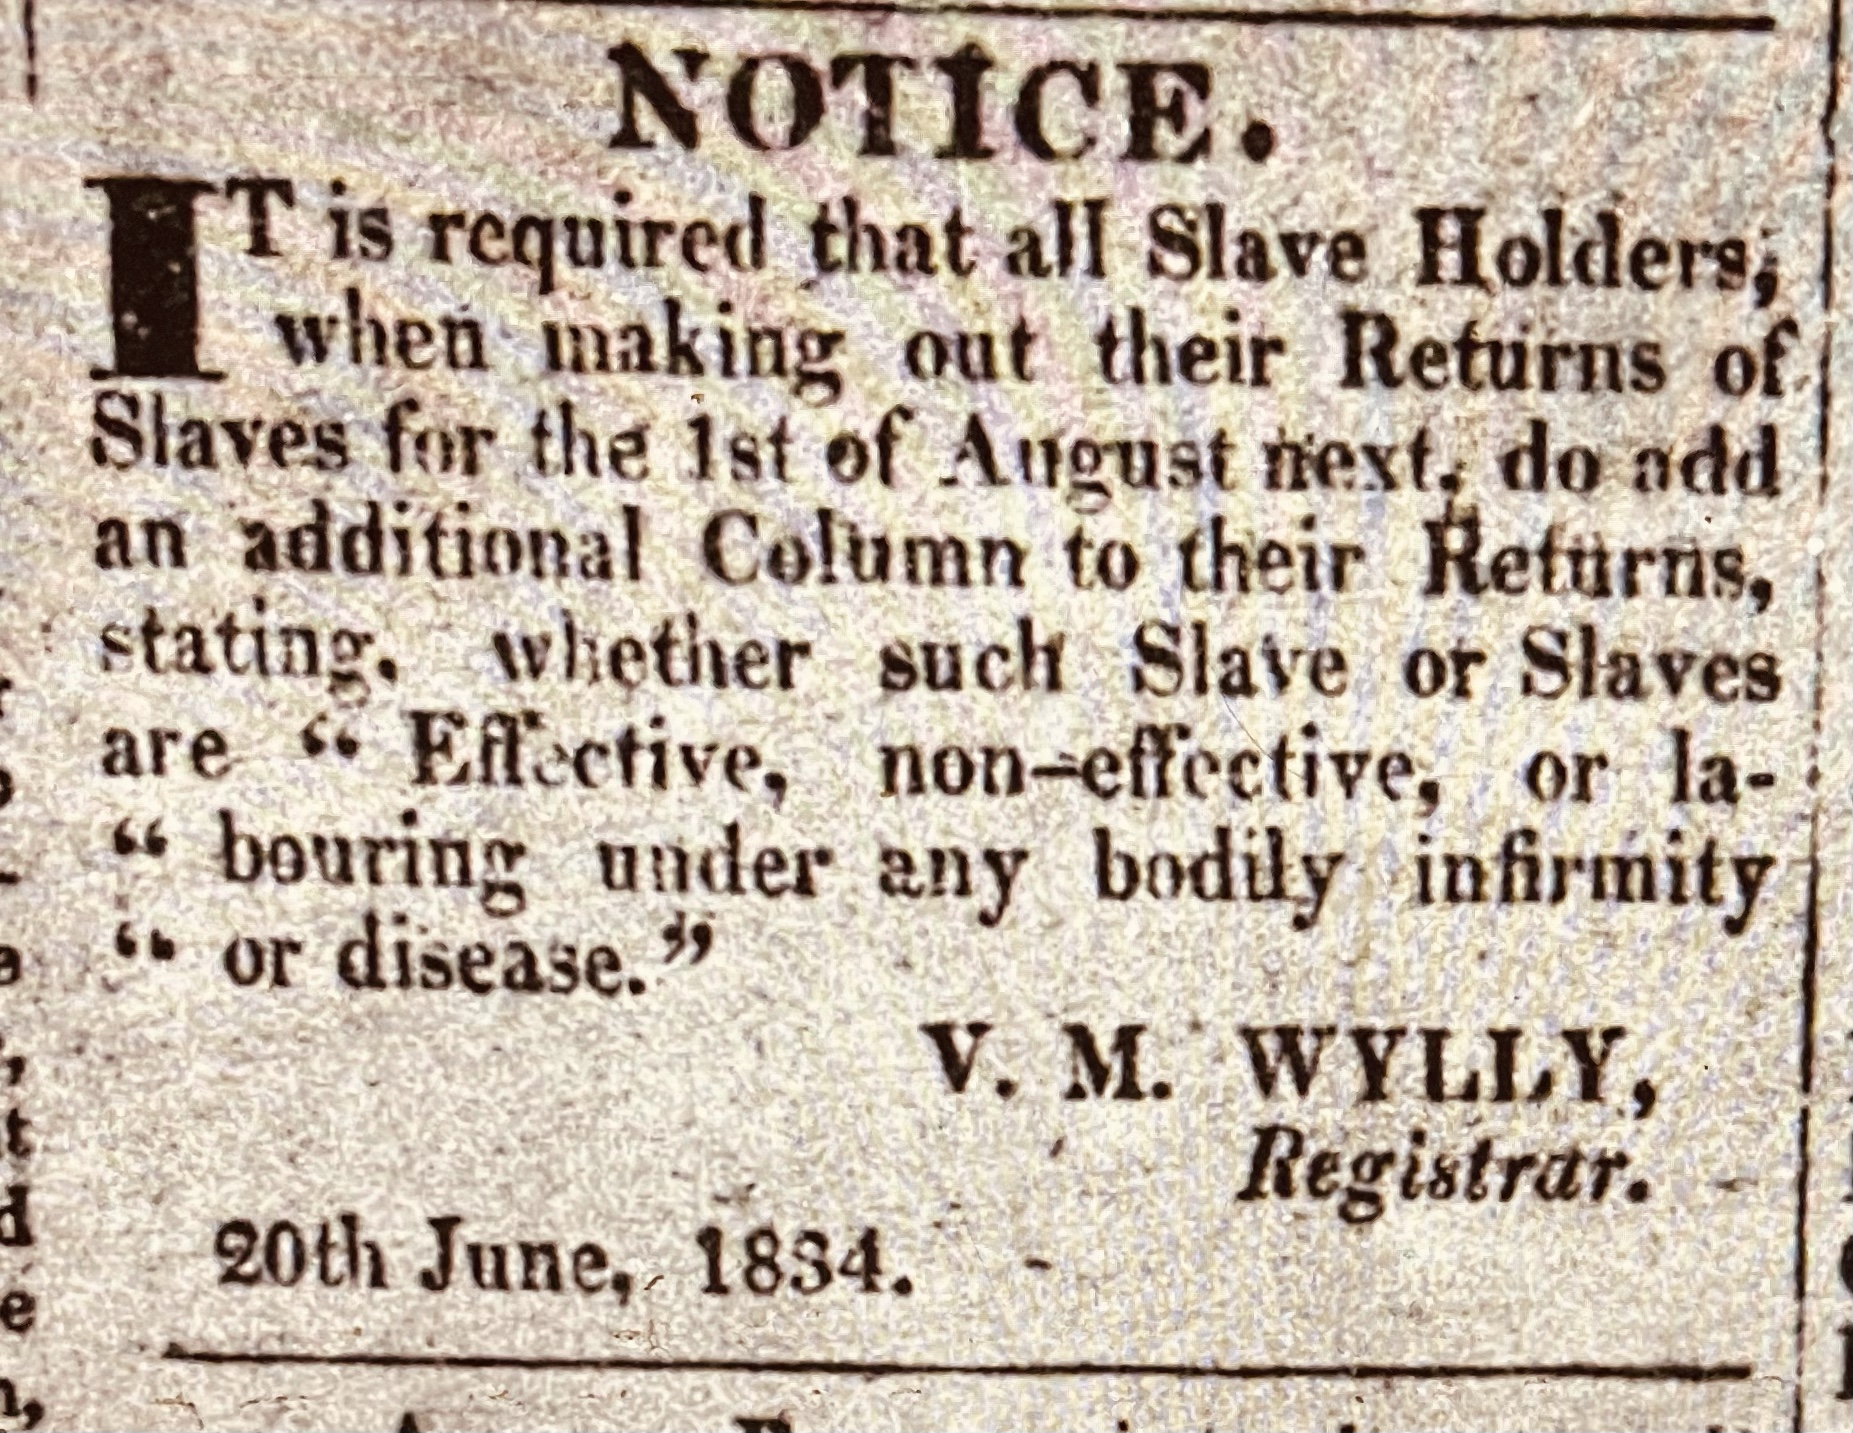 Bahamas Assembly Pays £36 To Stop Slave Compensation Claim For Negro Hanged Four Days After Emancipation 1835